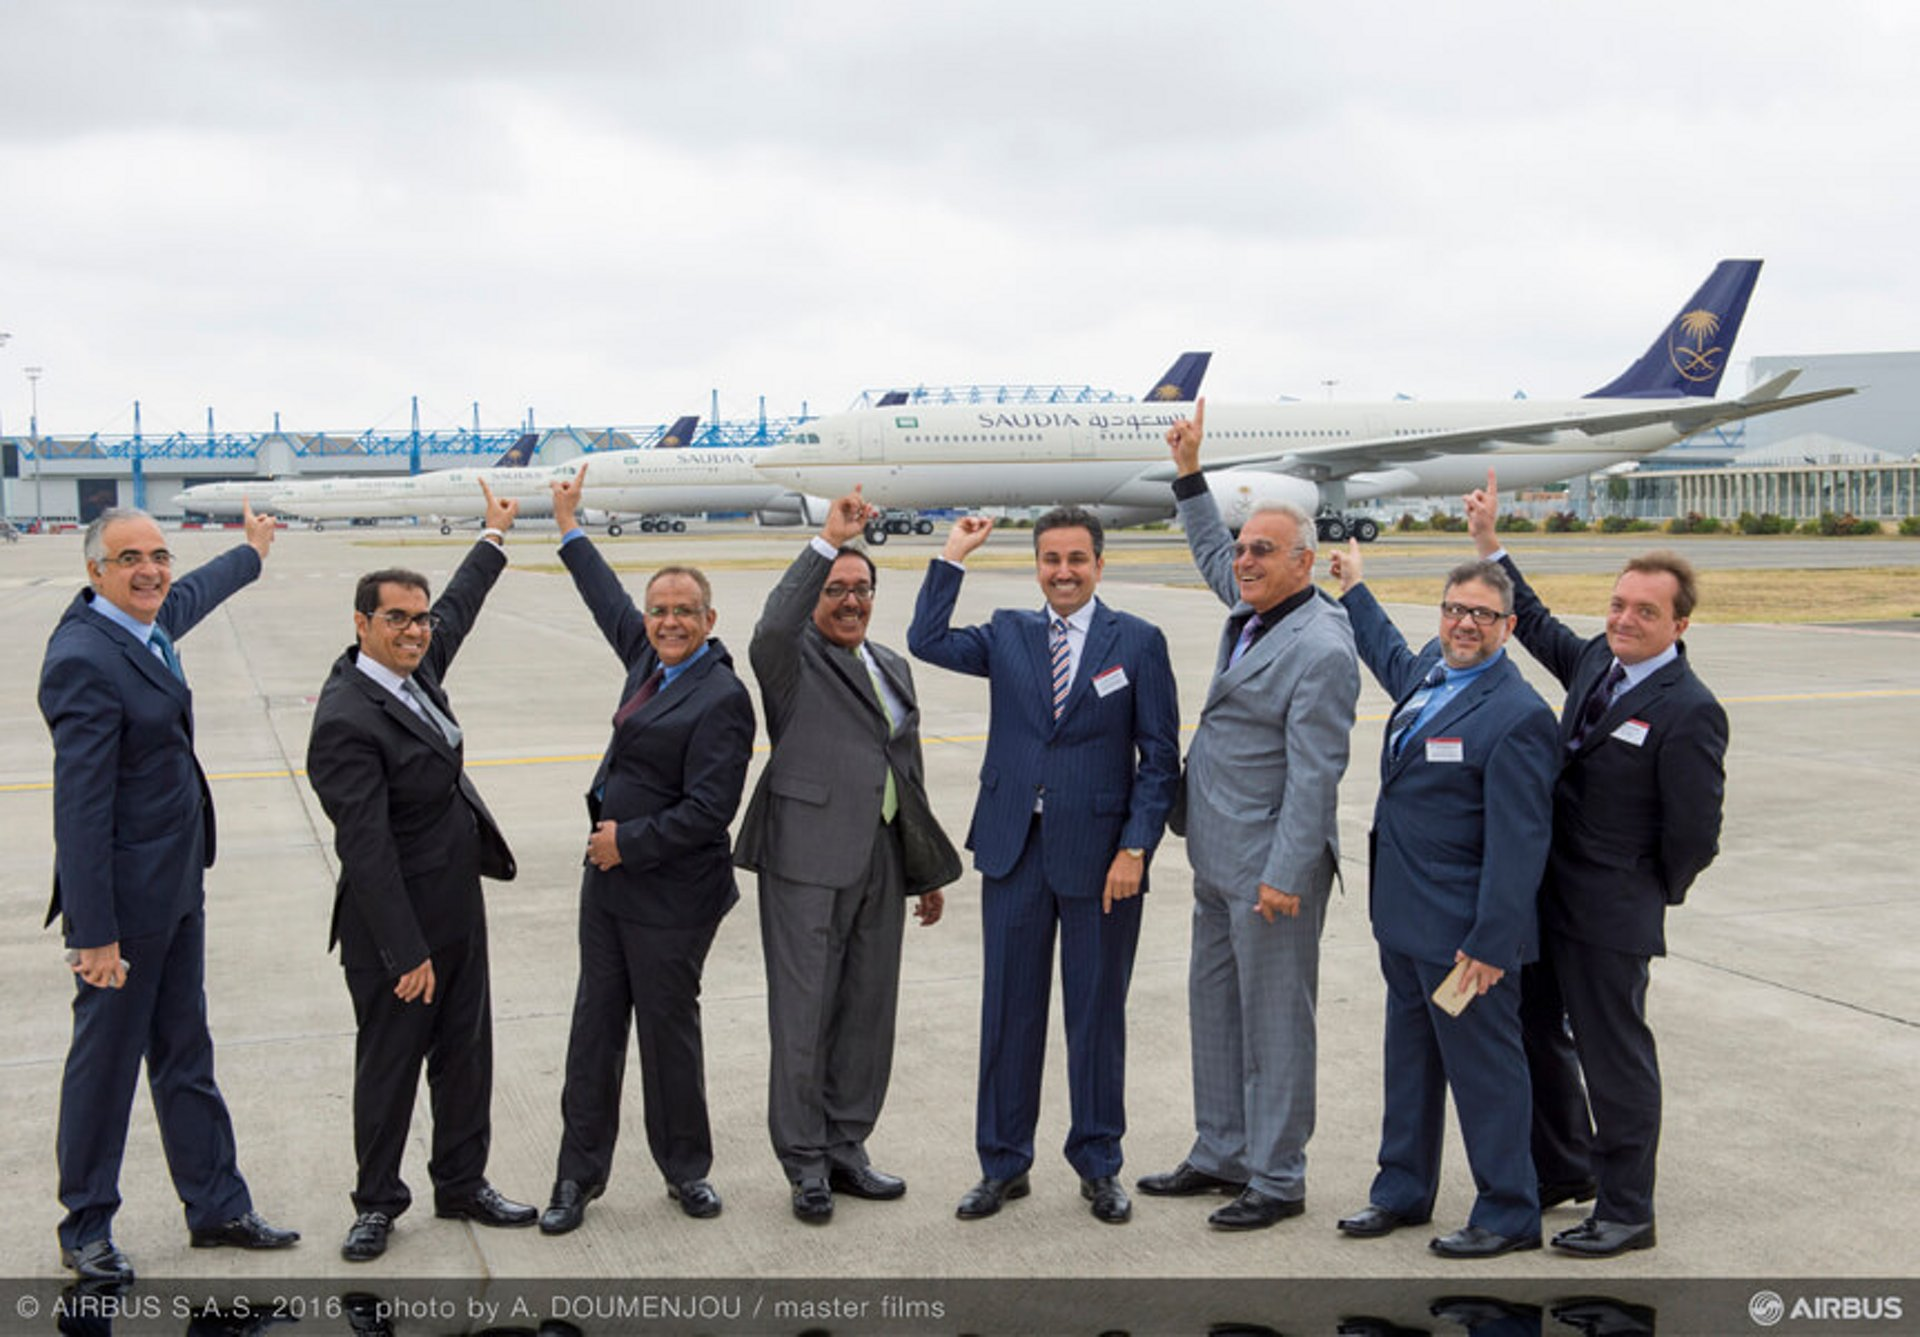 Saudi Arabian Airlines takes delivery of its first A330-300 Regional_2